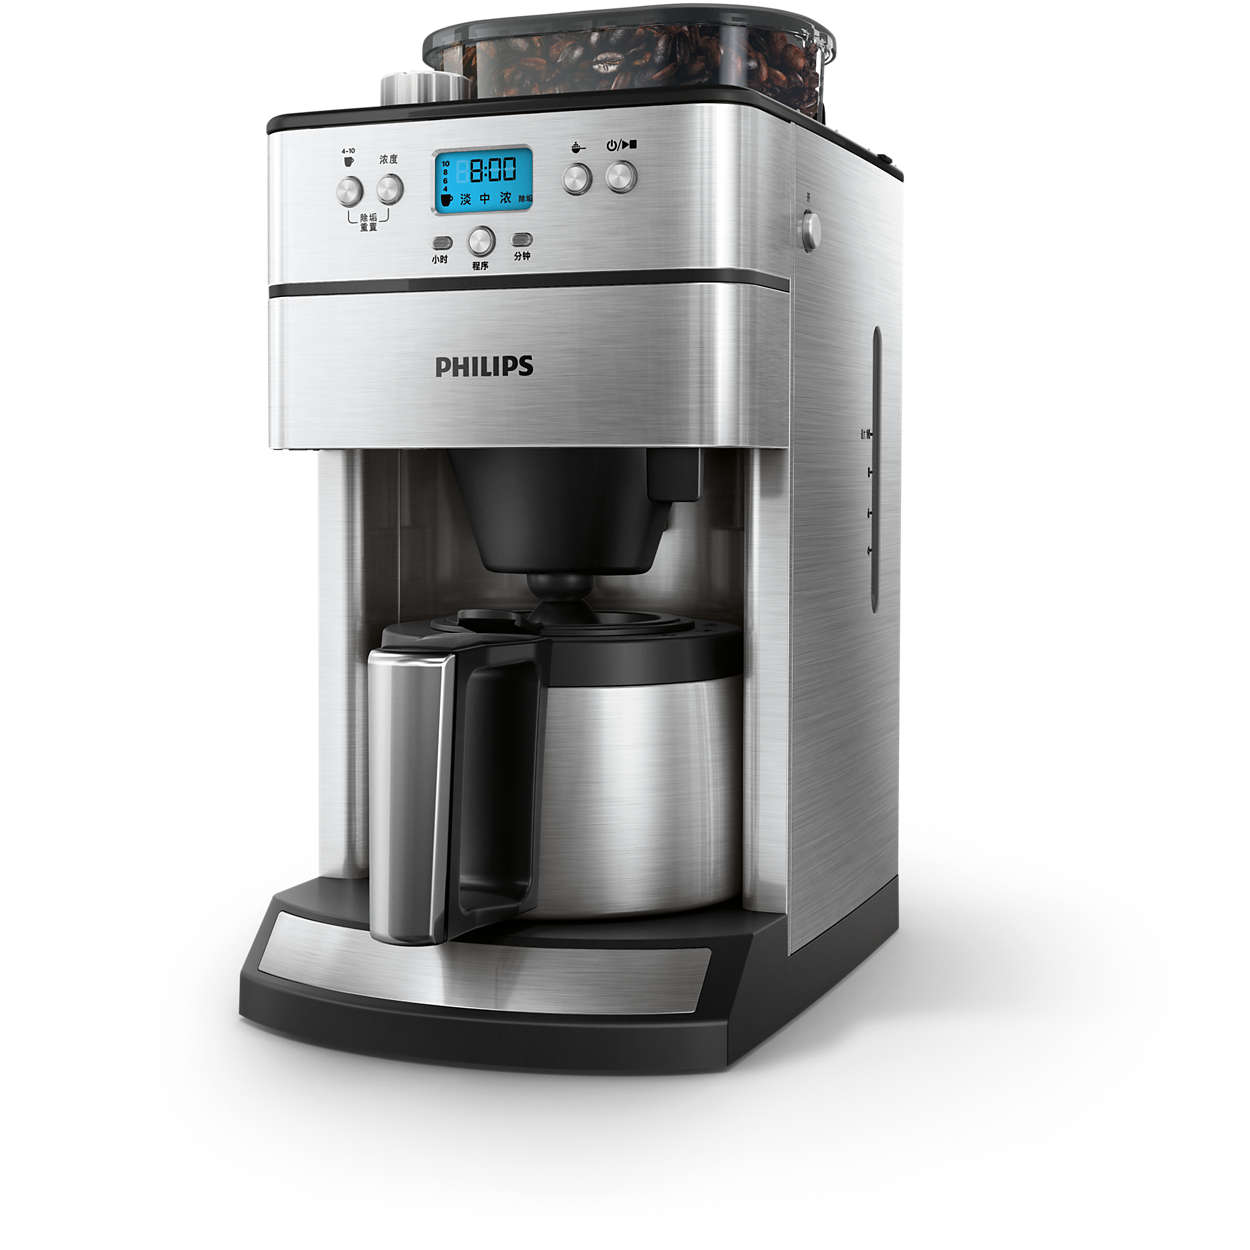 Grind brew cafeti re hd7753 00 philips - Cafetiere moudre grain cafe ...